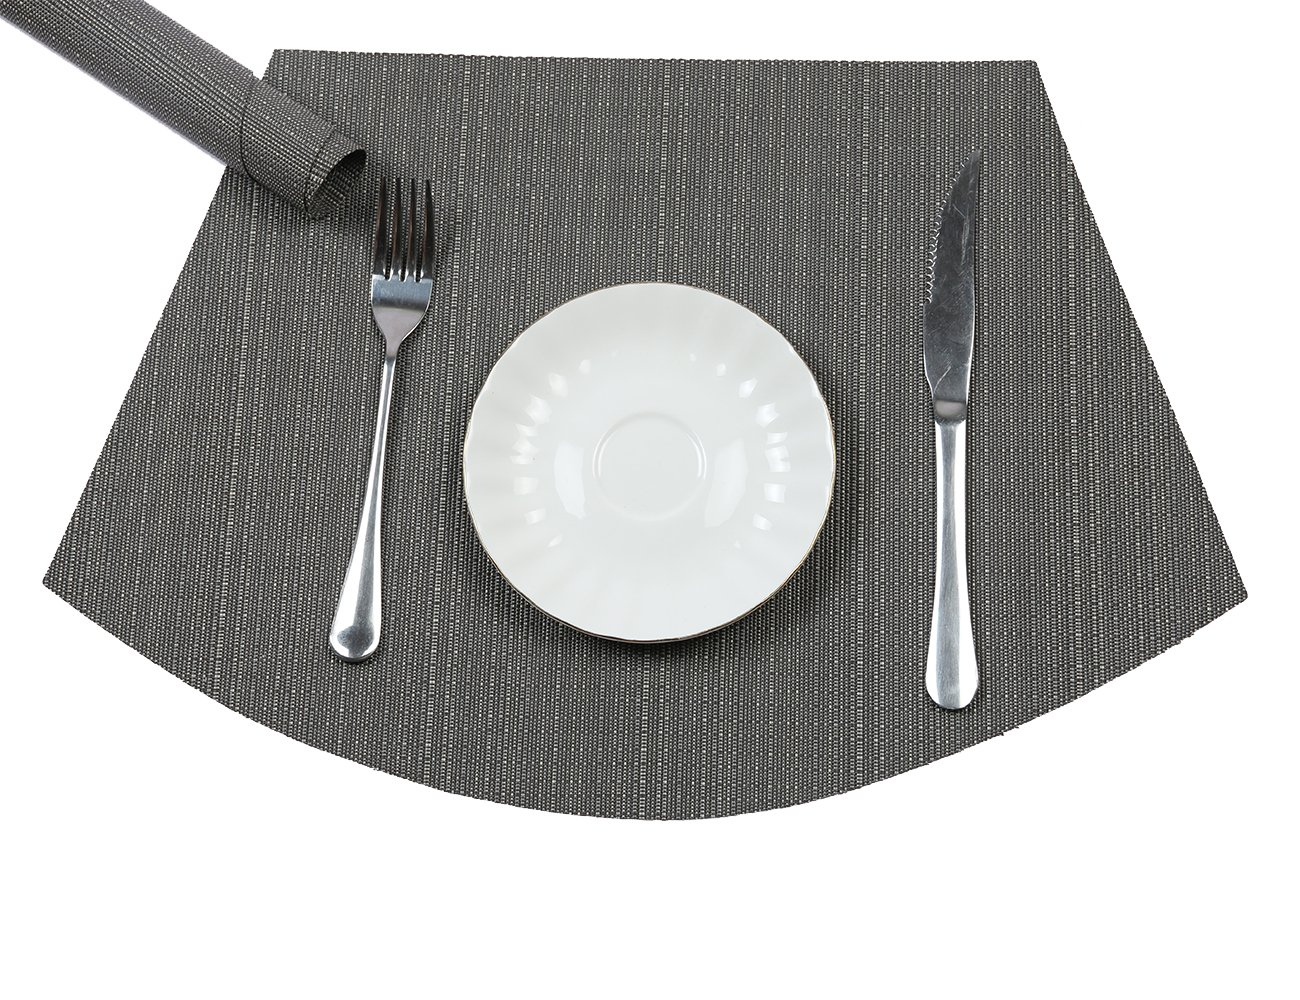 PAUWER Wedge Placemats for Round Tables Heat Insulation Stain-resistant Washable Vinyl Round Table Placemats Set of 6 (Grey)